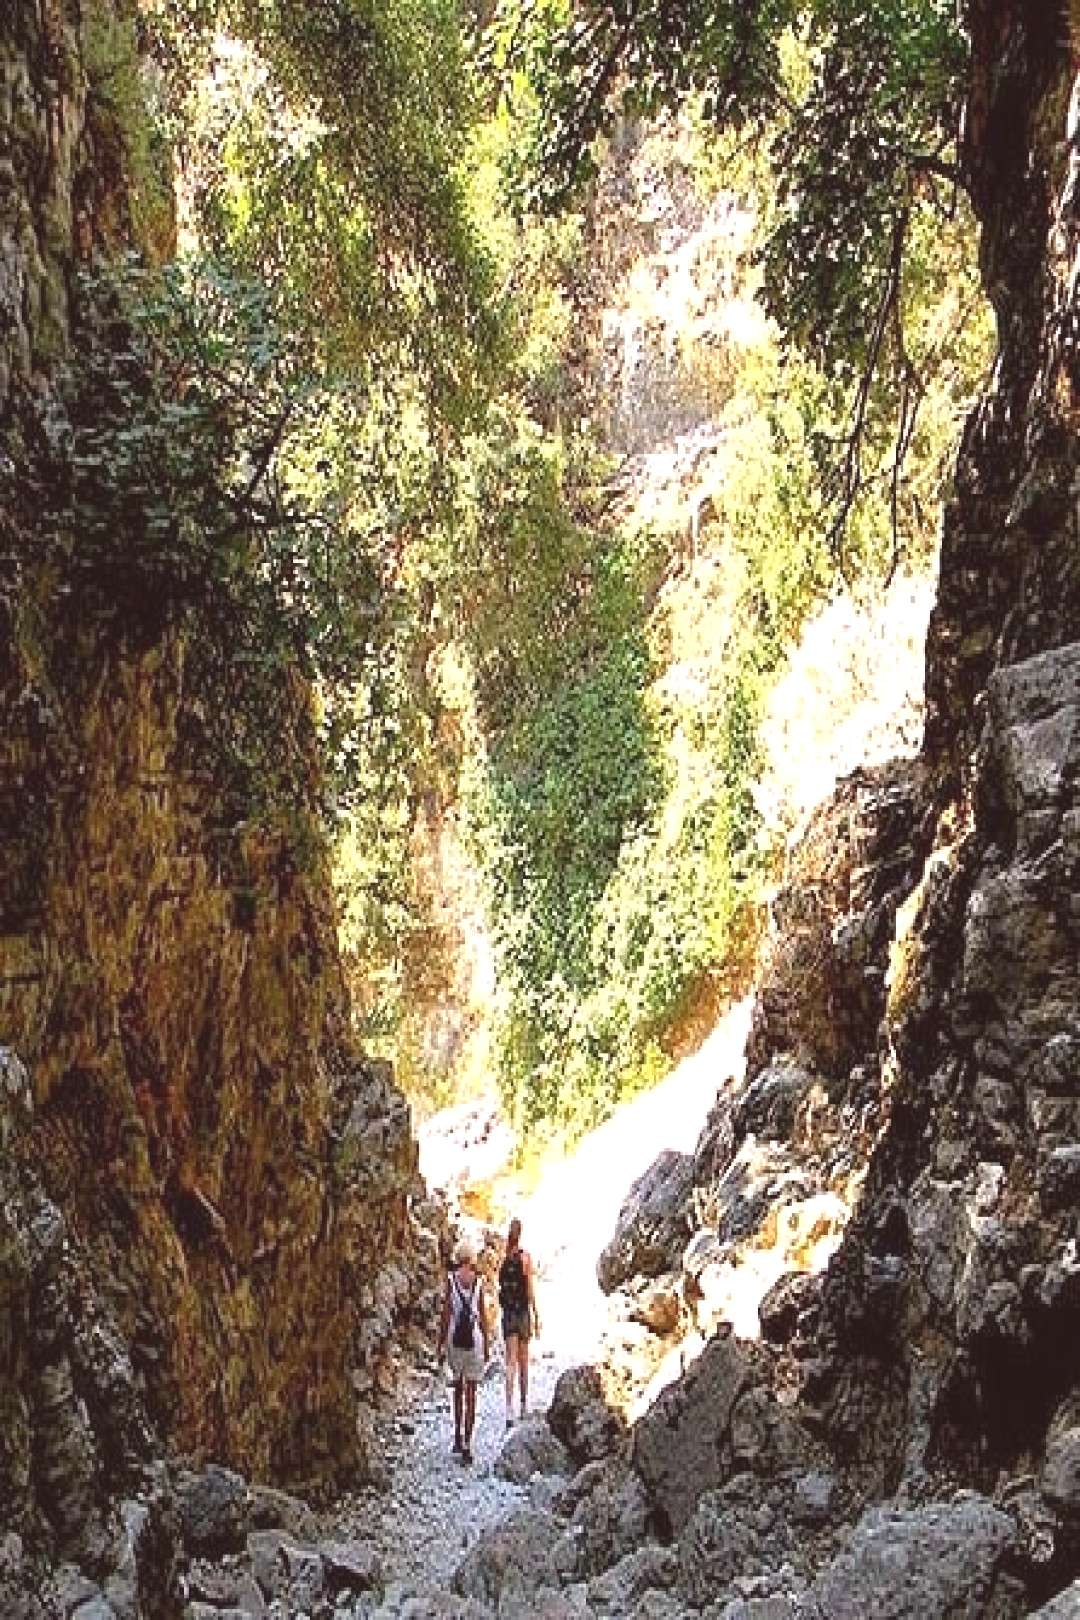 #imbrosgorge is located in province #sfakia and is the third most